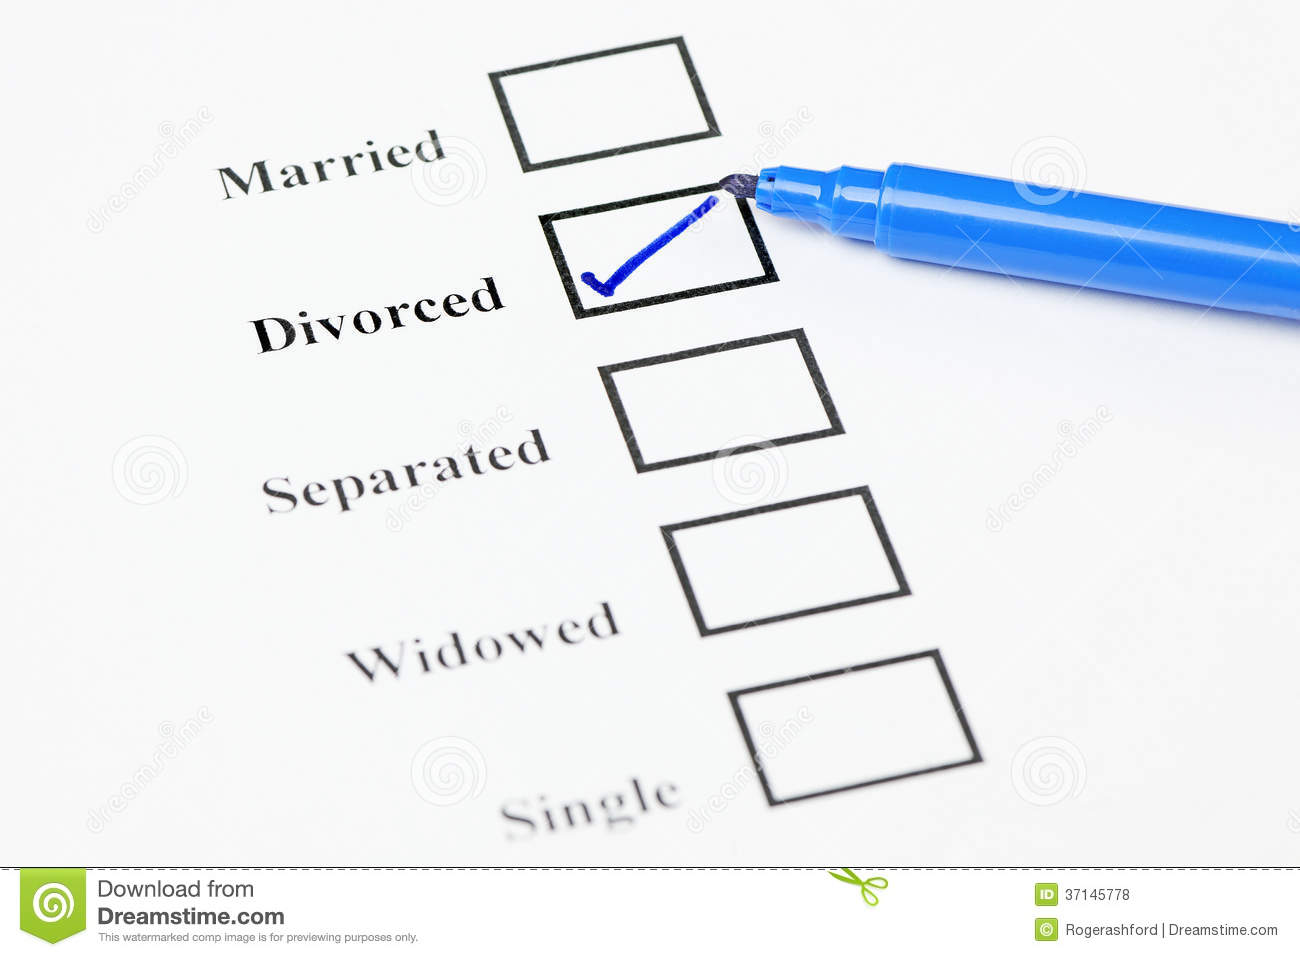 marital status essay Better ways to study the implications of marital status for happiness, health, and everything else if you really wanted to know, using the scientific gold standard, whether marrying makes people.